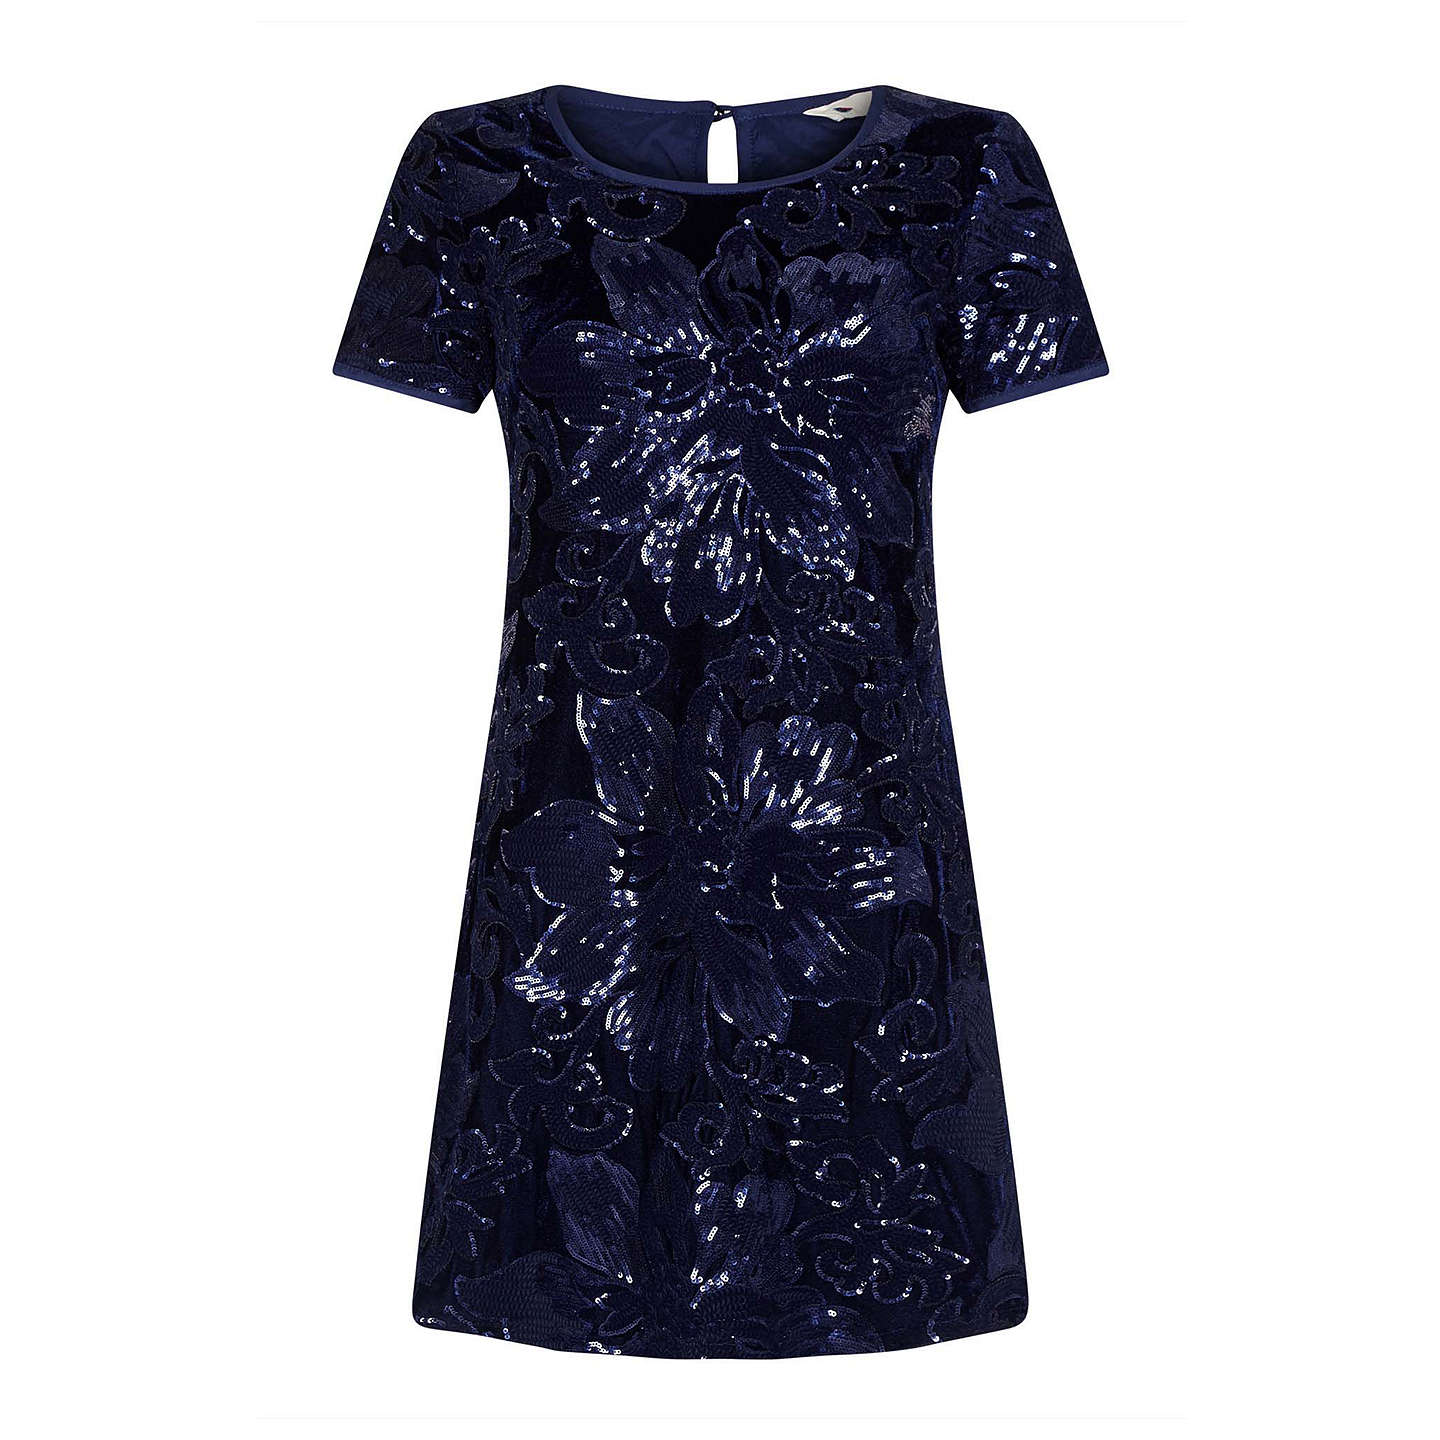 BuyYumi Sequin Tunic Dress, Navy, 8 Online at johnlewis.com